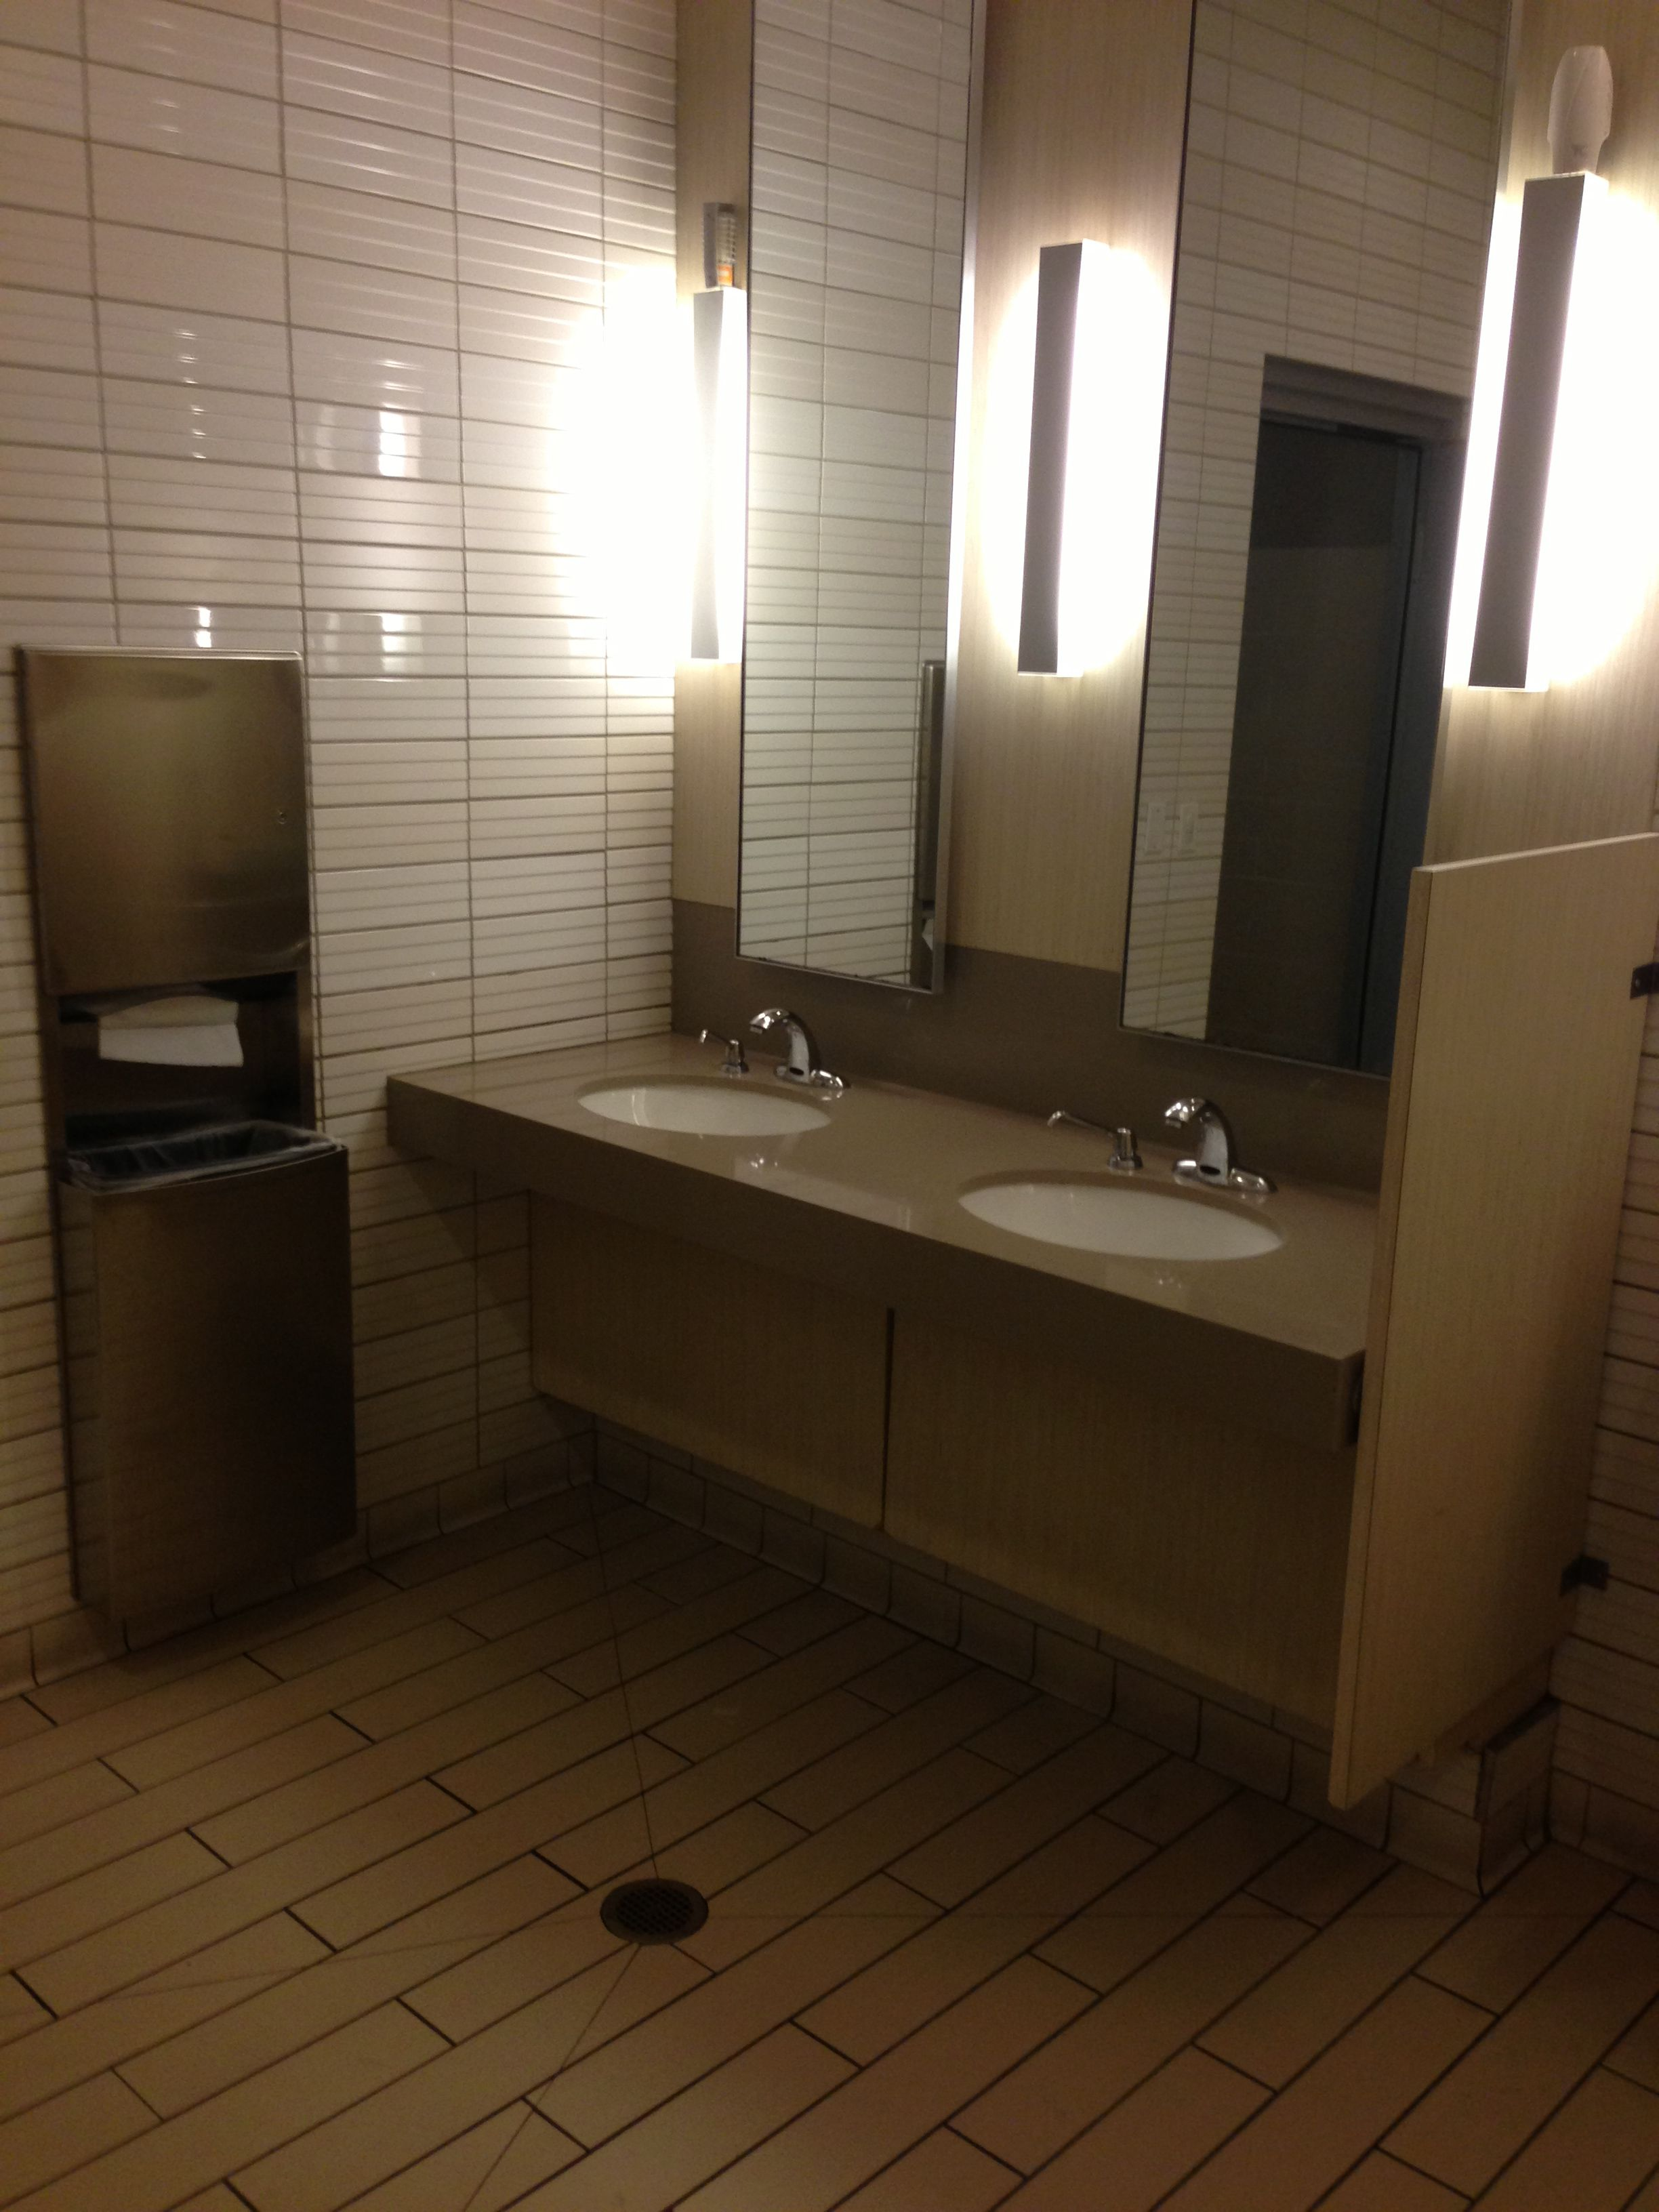 I always like a bathroom design which provides for open access underneath for wheelchairs.